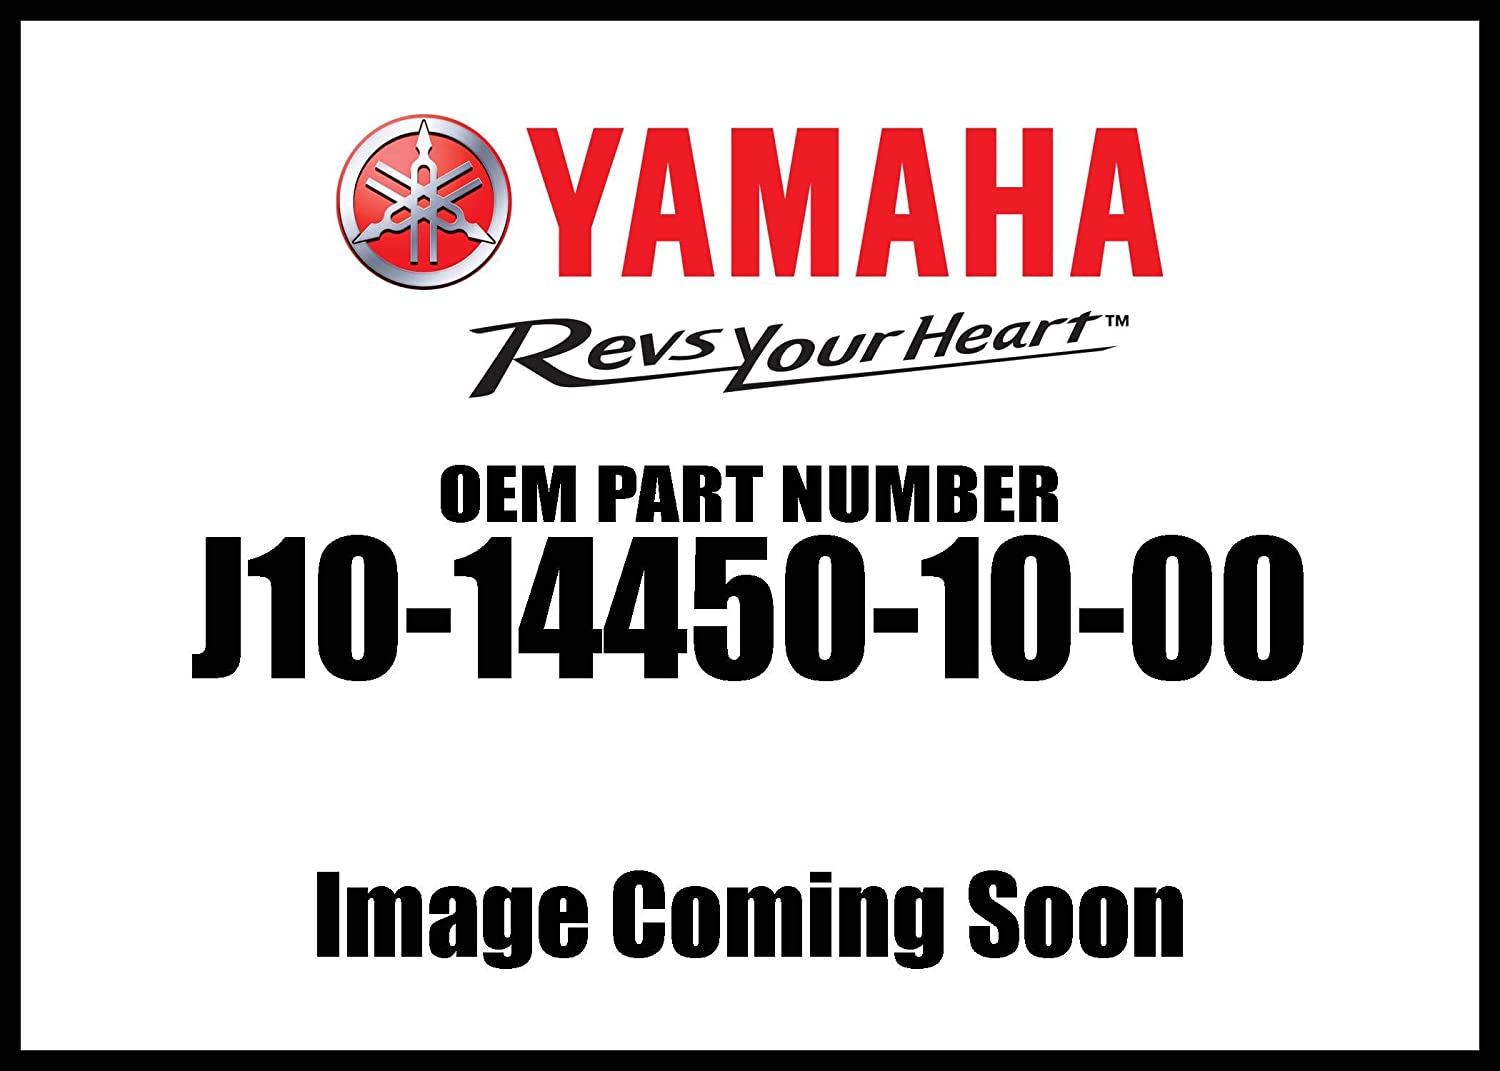 Yamaha J10-14450-10-00 ELEMENT ASSY; J10144501000